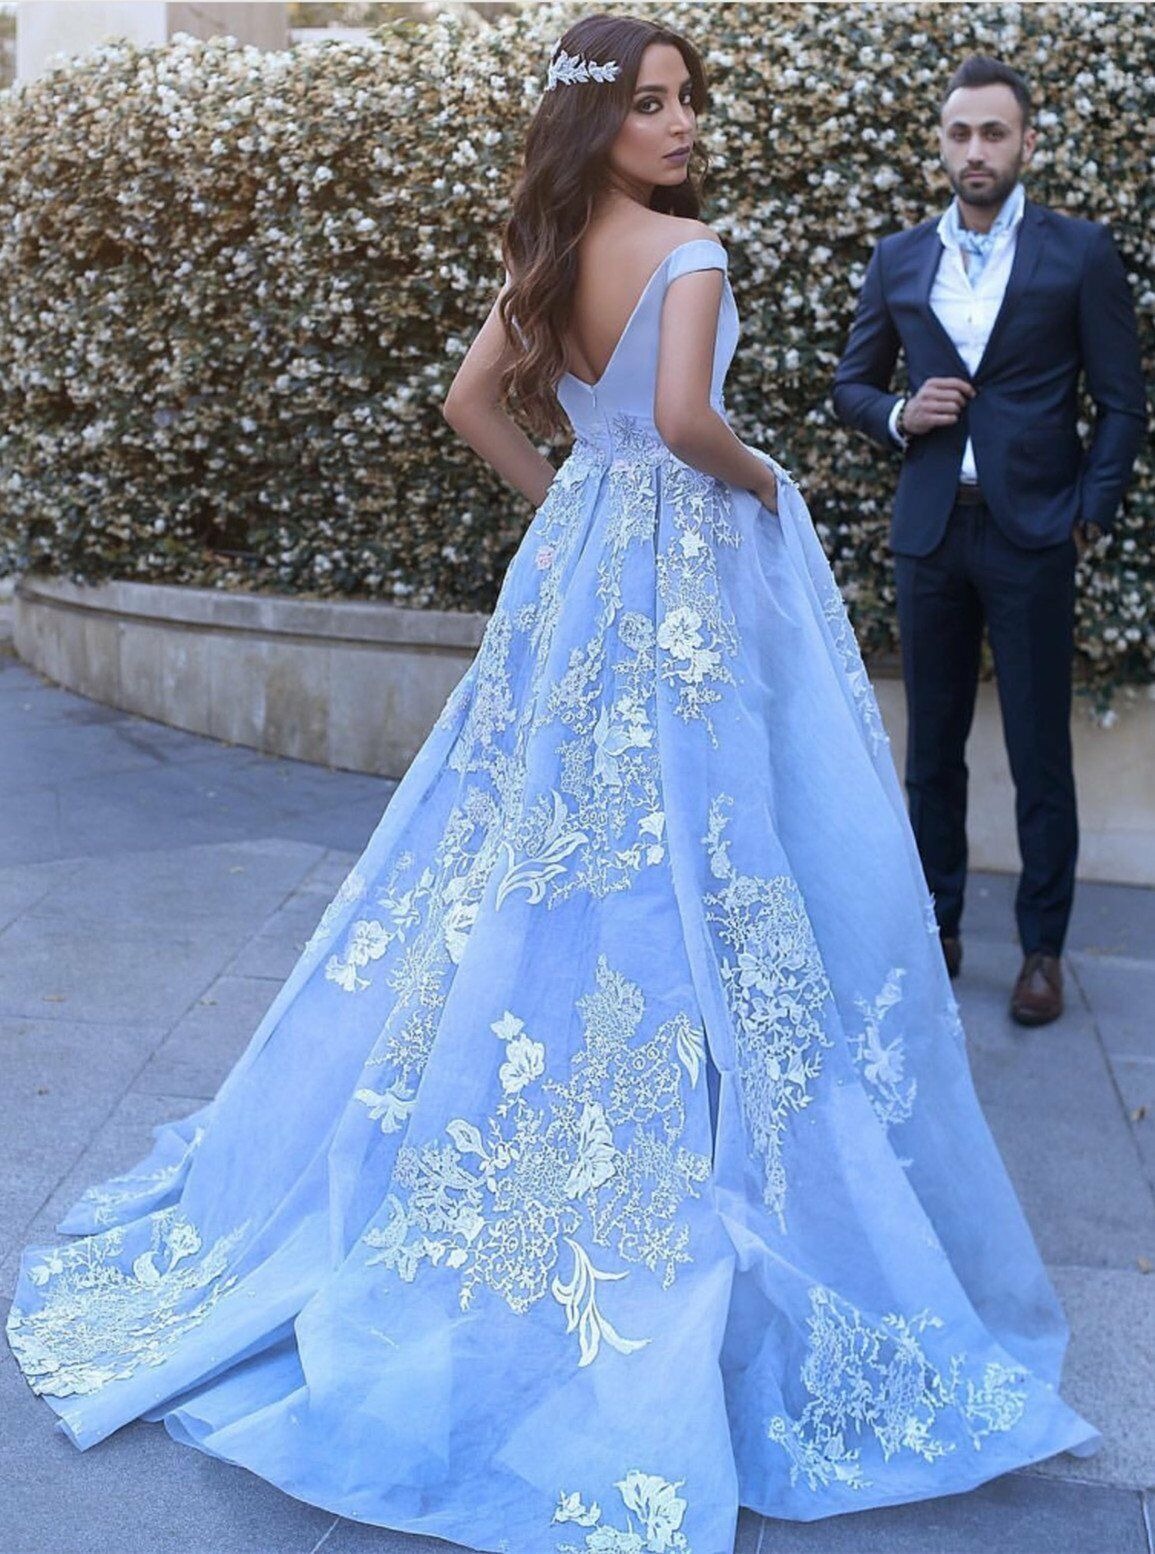 2018 Lace Appliques Baby Baby Baby bluee Formal Evening Gown Prom Ball Party Prom Dresses f305c1